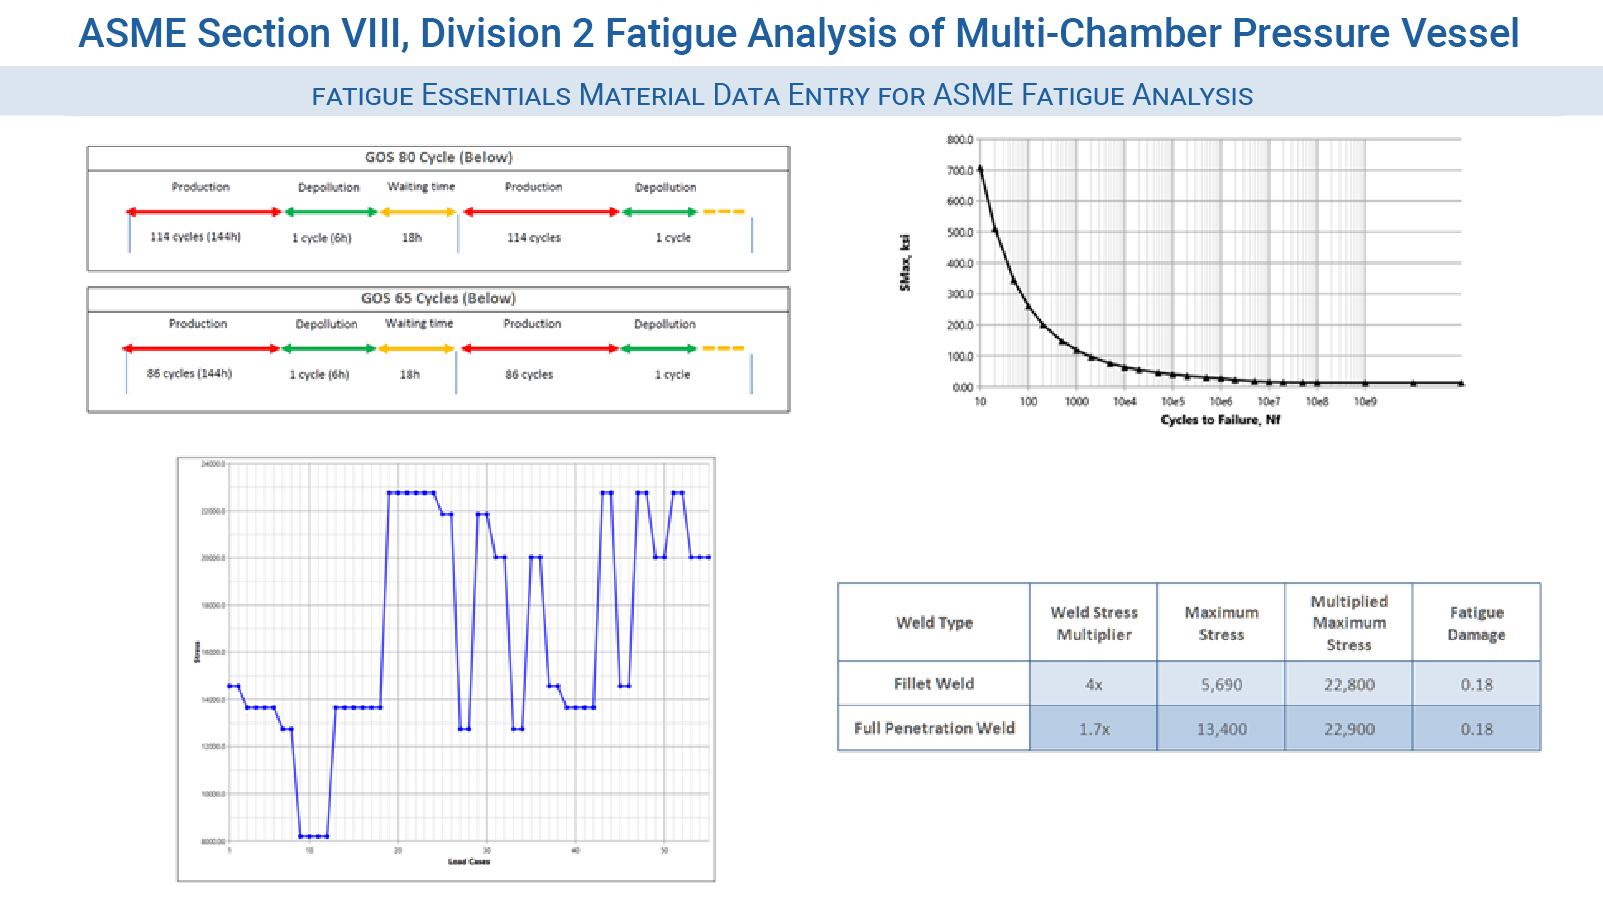 FEA Consulting Services - ASME Section VIII, Division 2 Fatigue Analysis of Multi-Chamber Pressure Vessel